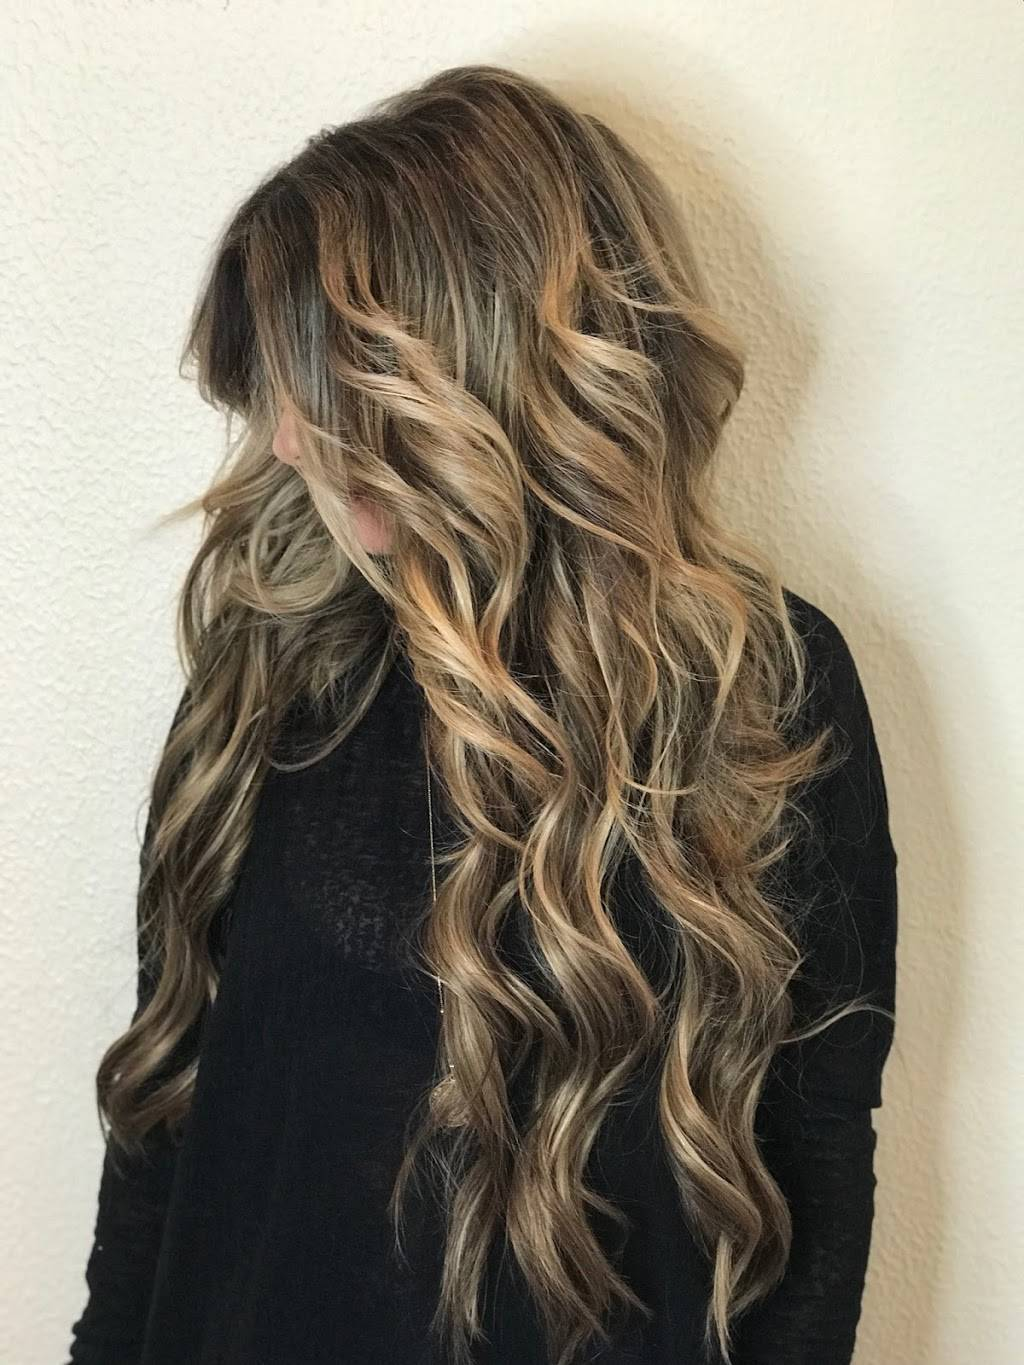 Amie & Co. Hair Studio - hair care  | Photo 1 of 5 | Address: 1521 Blackiston Mill Rd, Clarksville, IN 47129, USA | Phone: (502) 641-4895